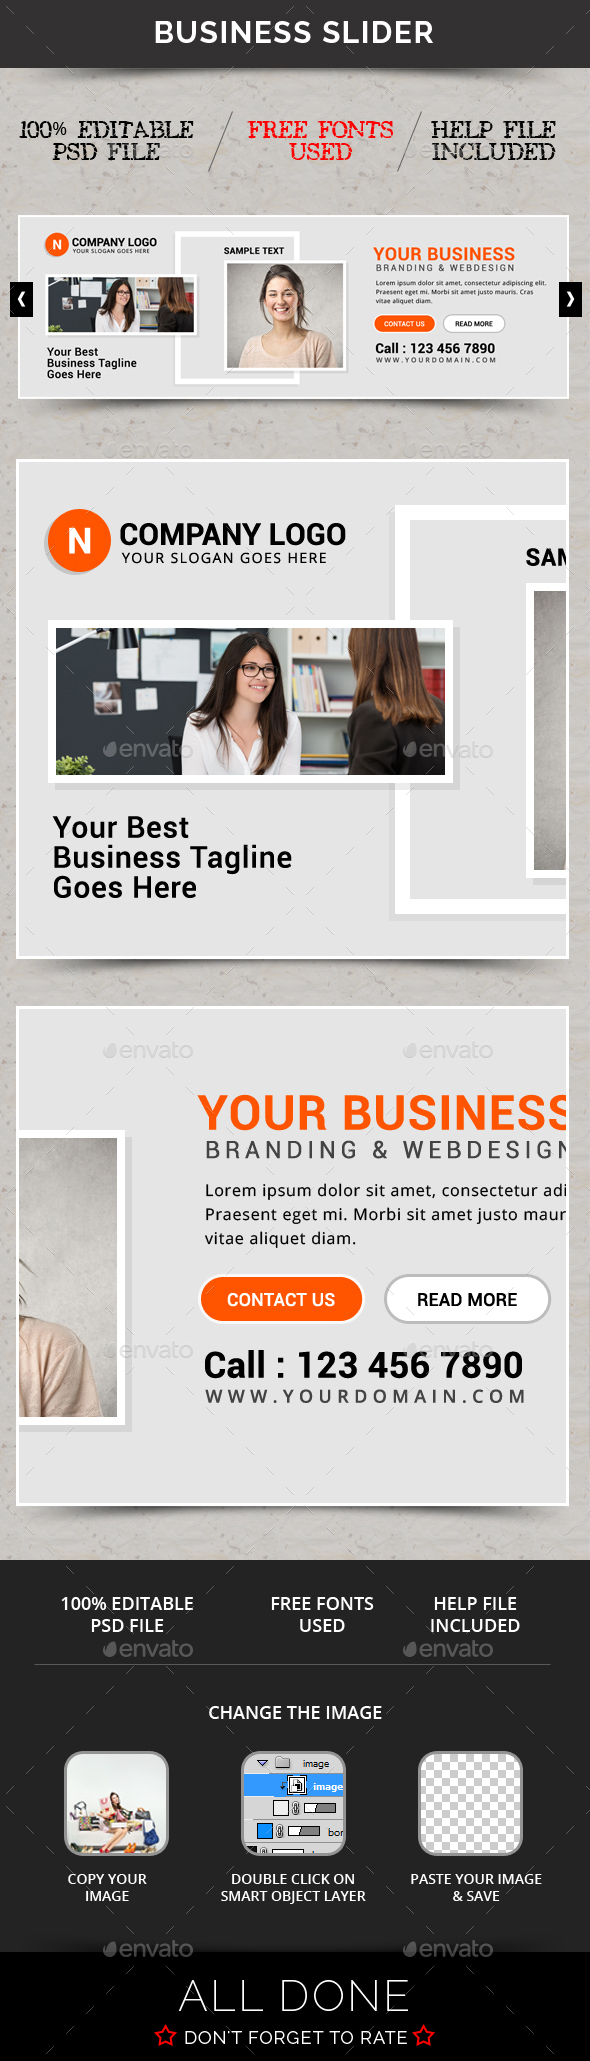 Business Slider V54 - Sliders & Features Web Elements